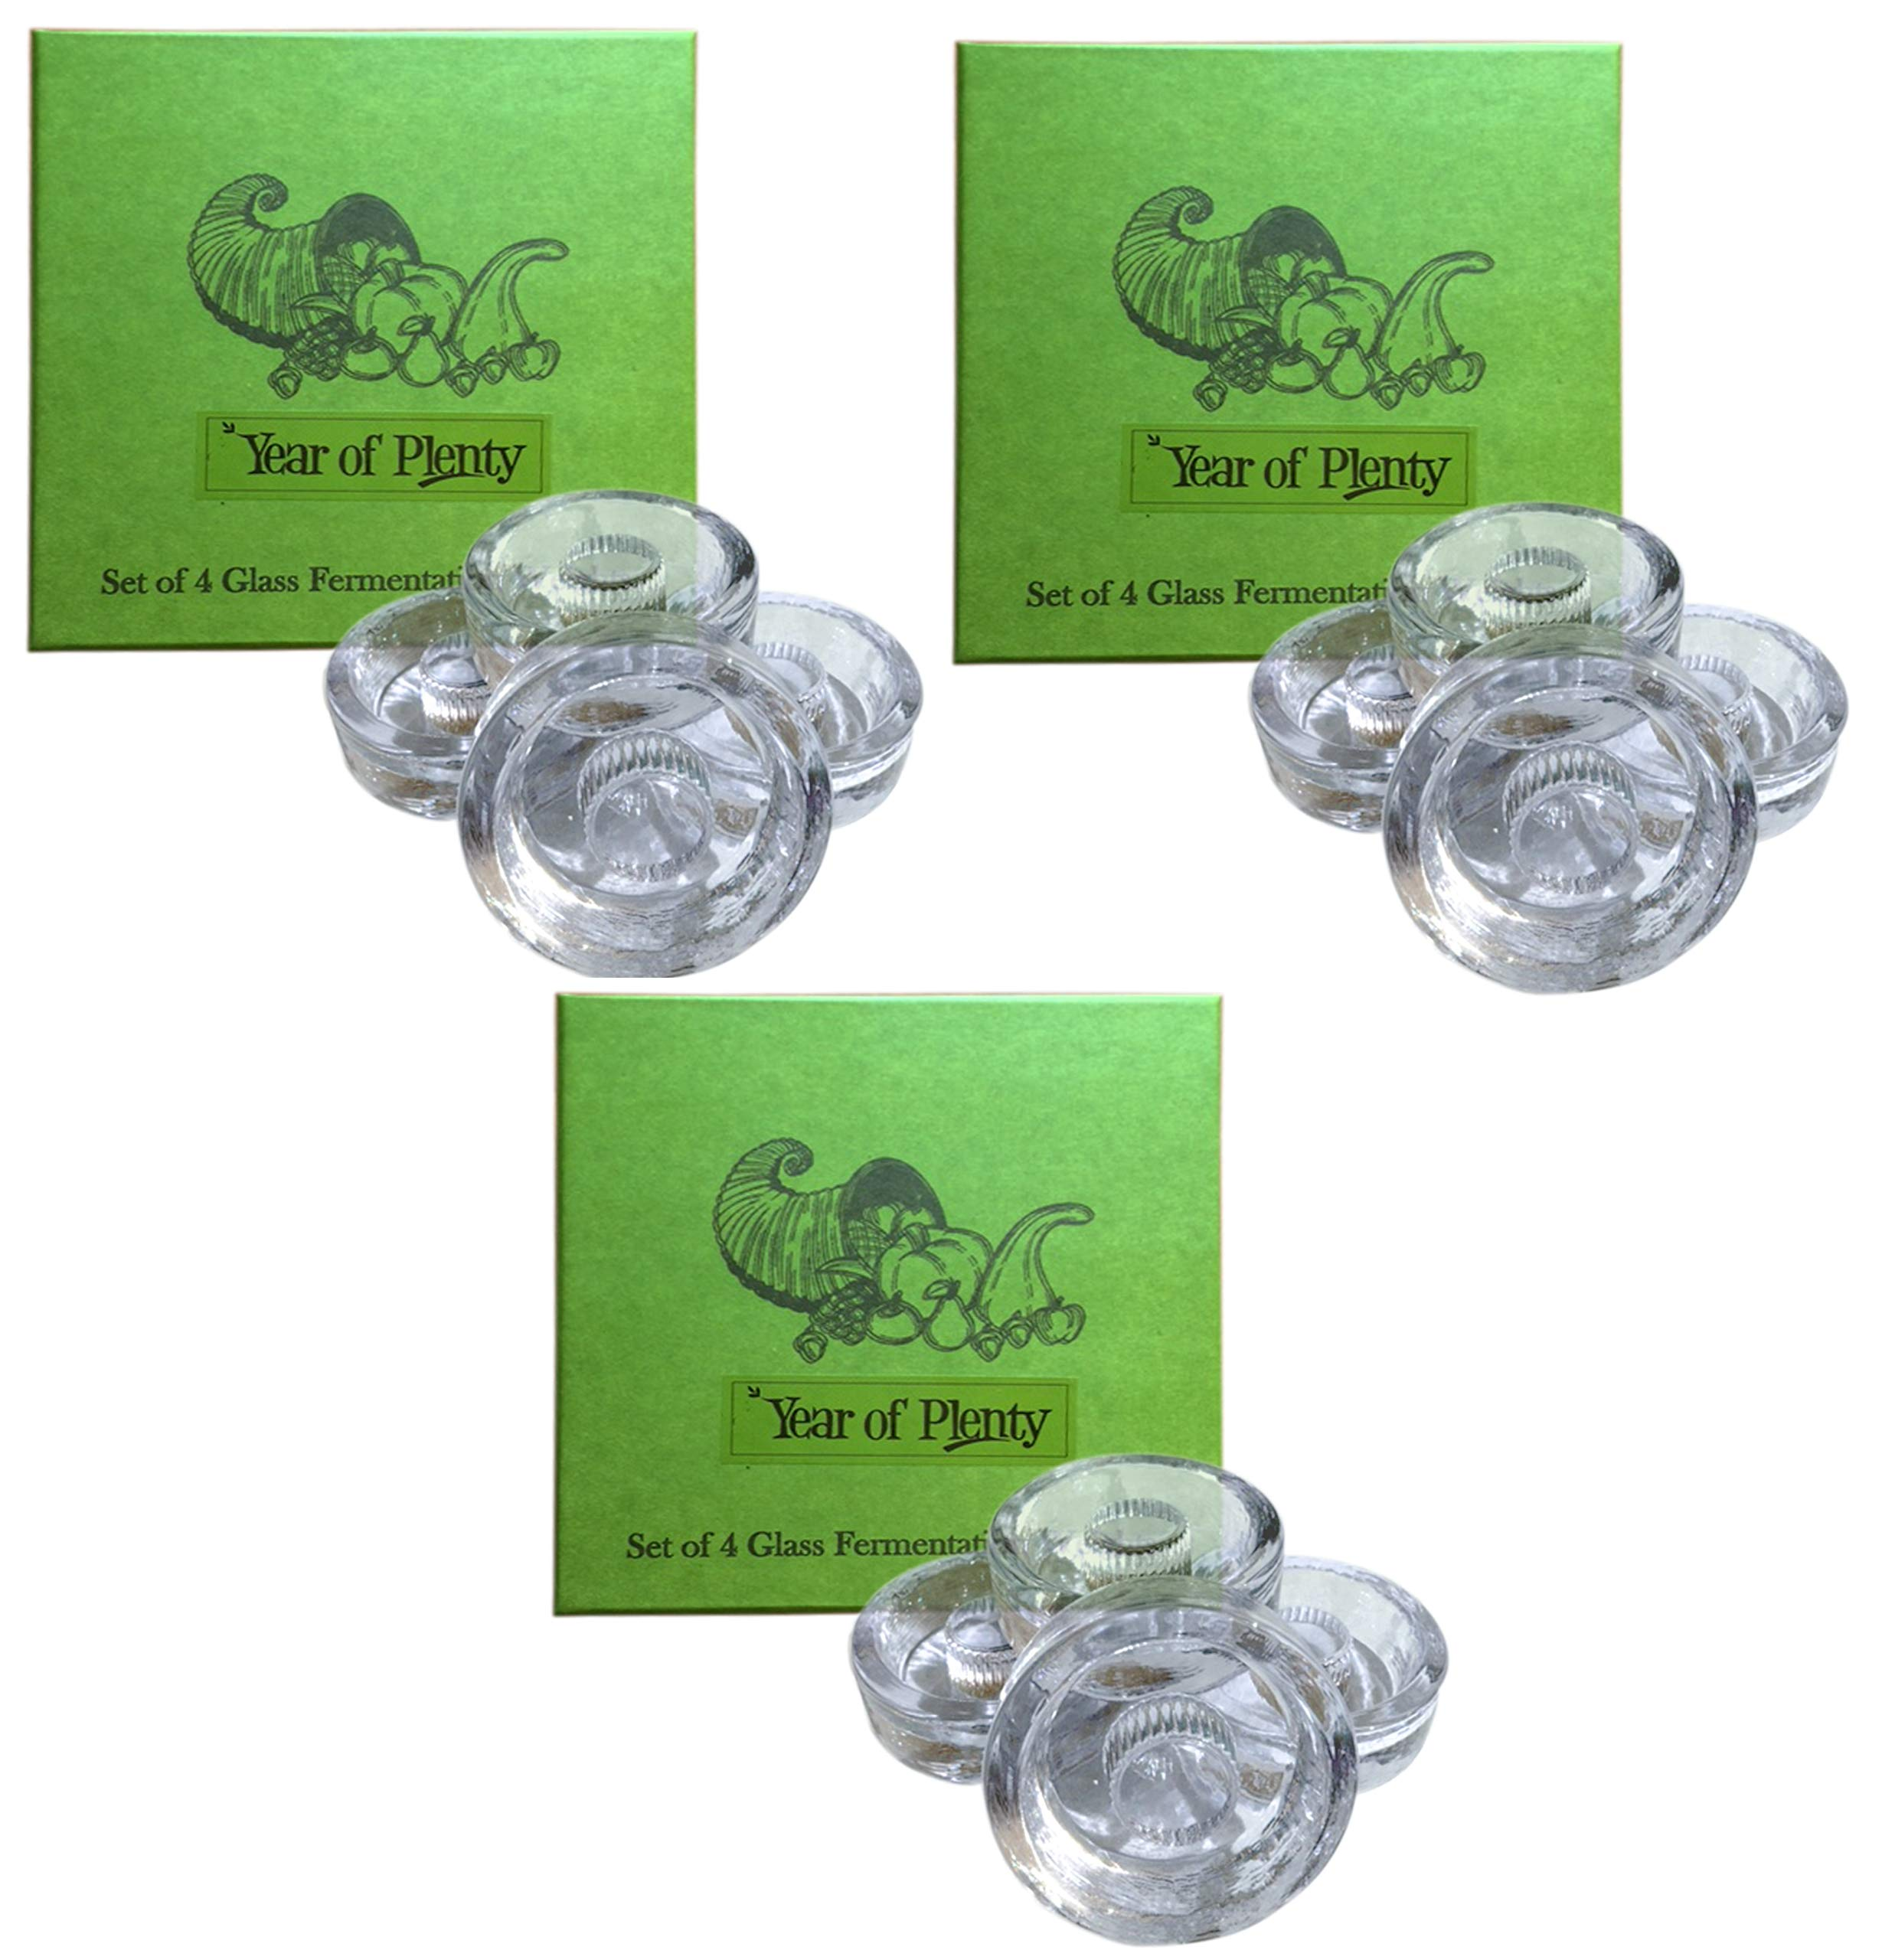 Year of Plenty Fermentation Weights - NonSlip Grip Handle - for Fermenting Sauerkraut, Pickles, Kimchi in Wide Mouth Mason Jars - Lead/Cadmium Free - (Set of 12) by Year of Plenty